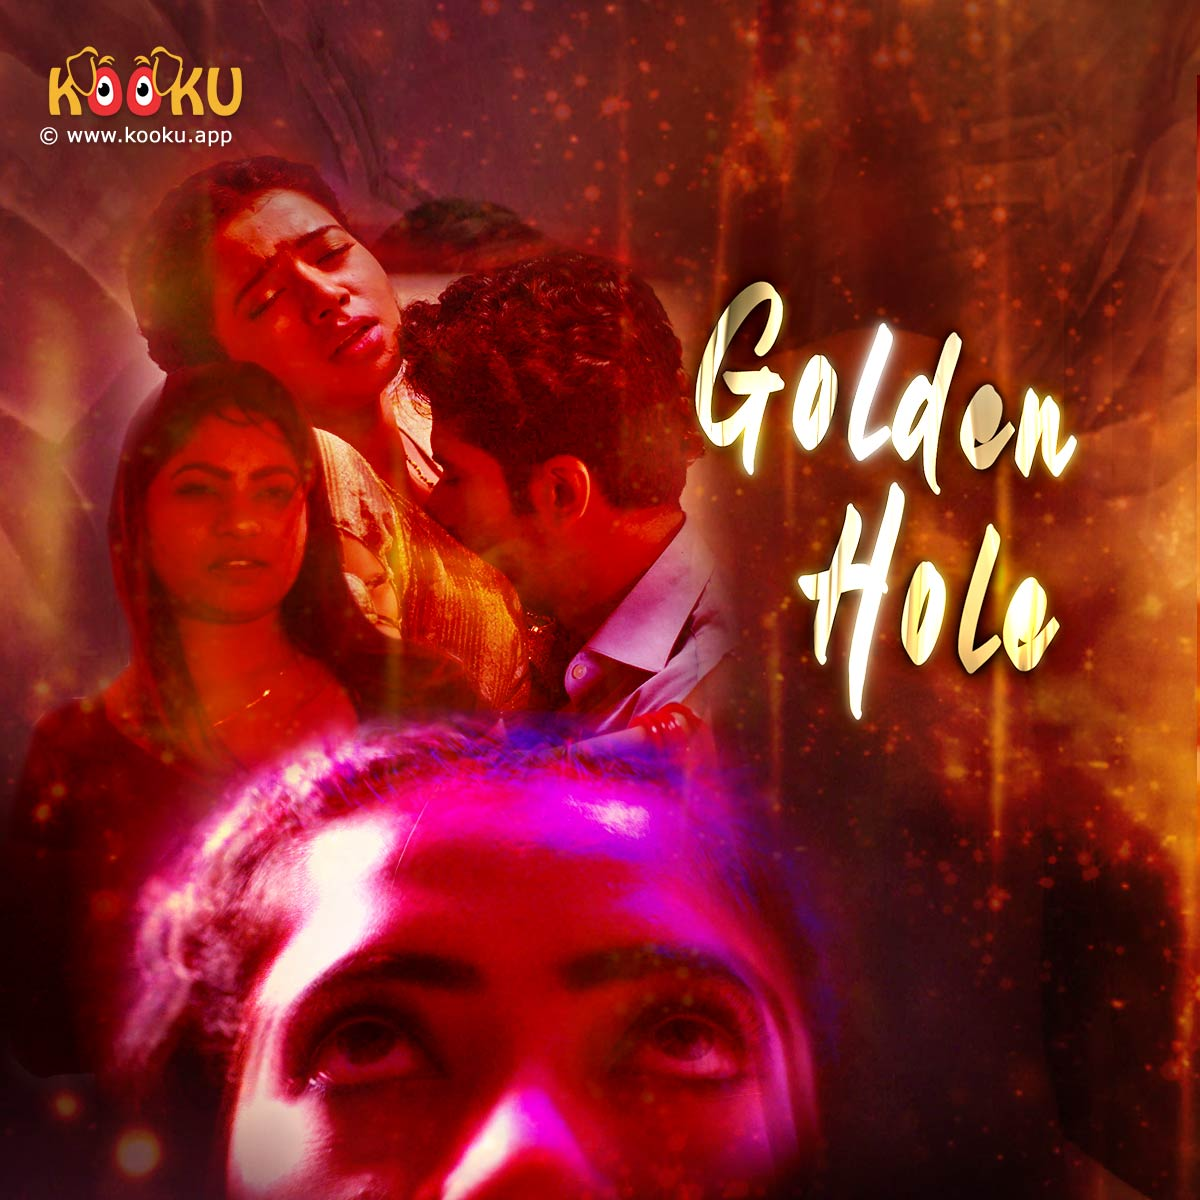 Golden Hole 2020 S01 Hindi Kooku App Web Series Official Trailer 720p HDRip 28MB Download